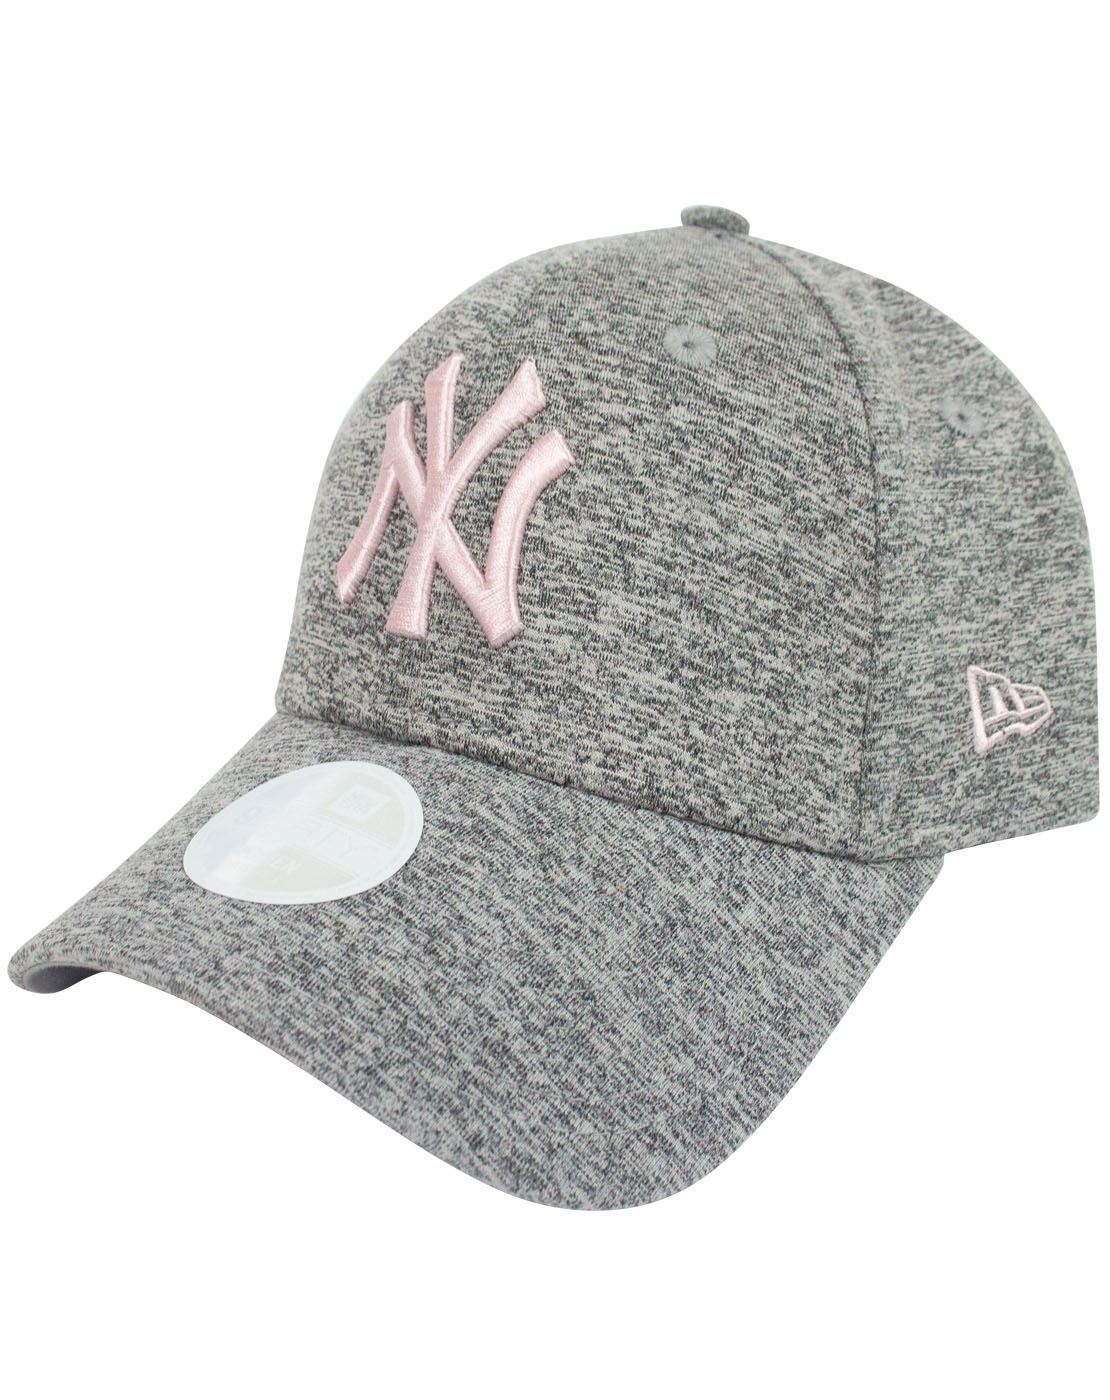 New Era 9Forty MLB New York Yankees Tech Jersey Pink Women s Cap – Vanilla  Underground 61381753dba